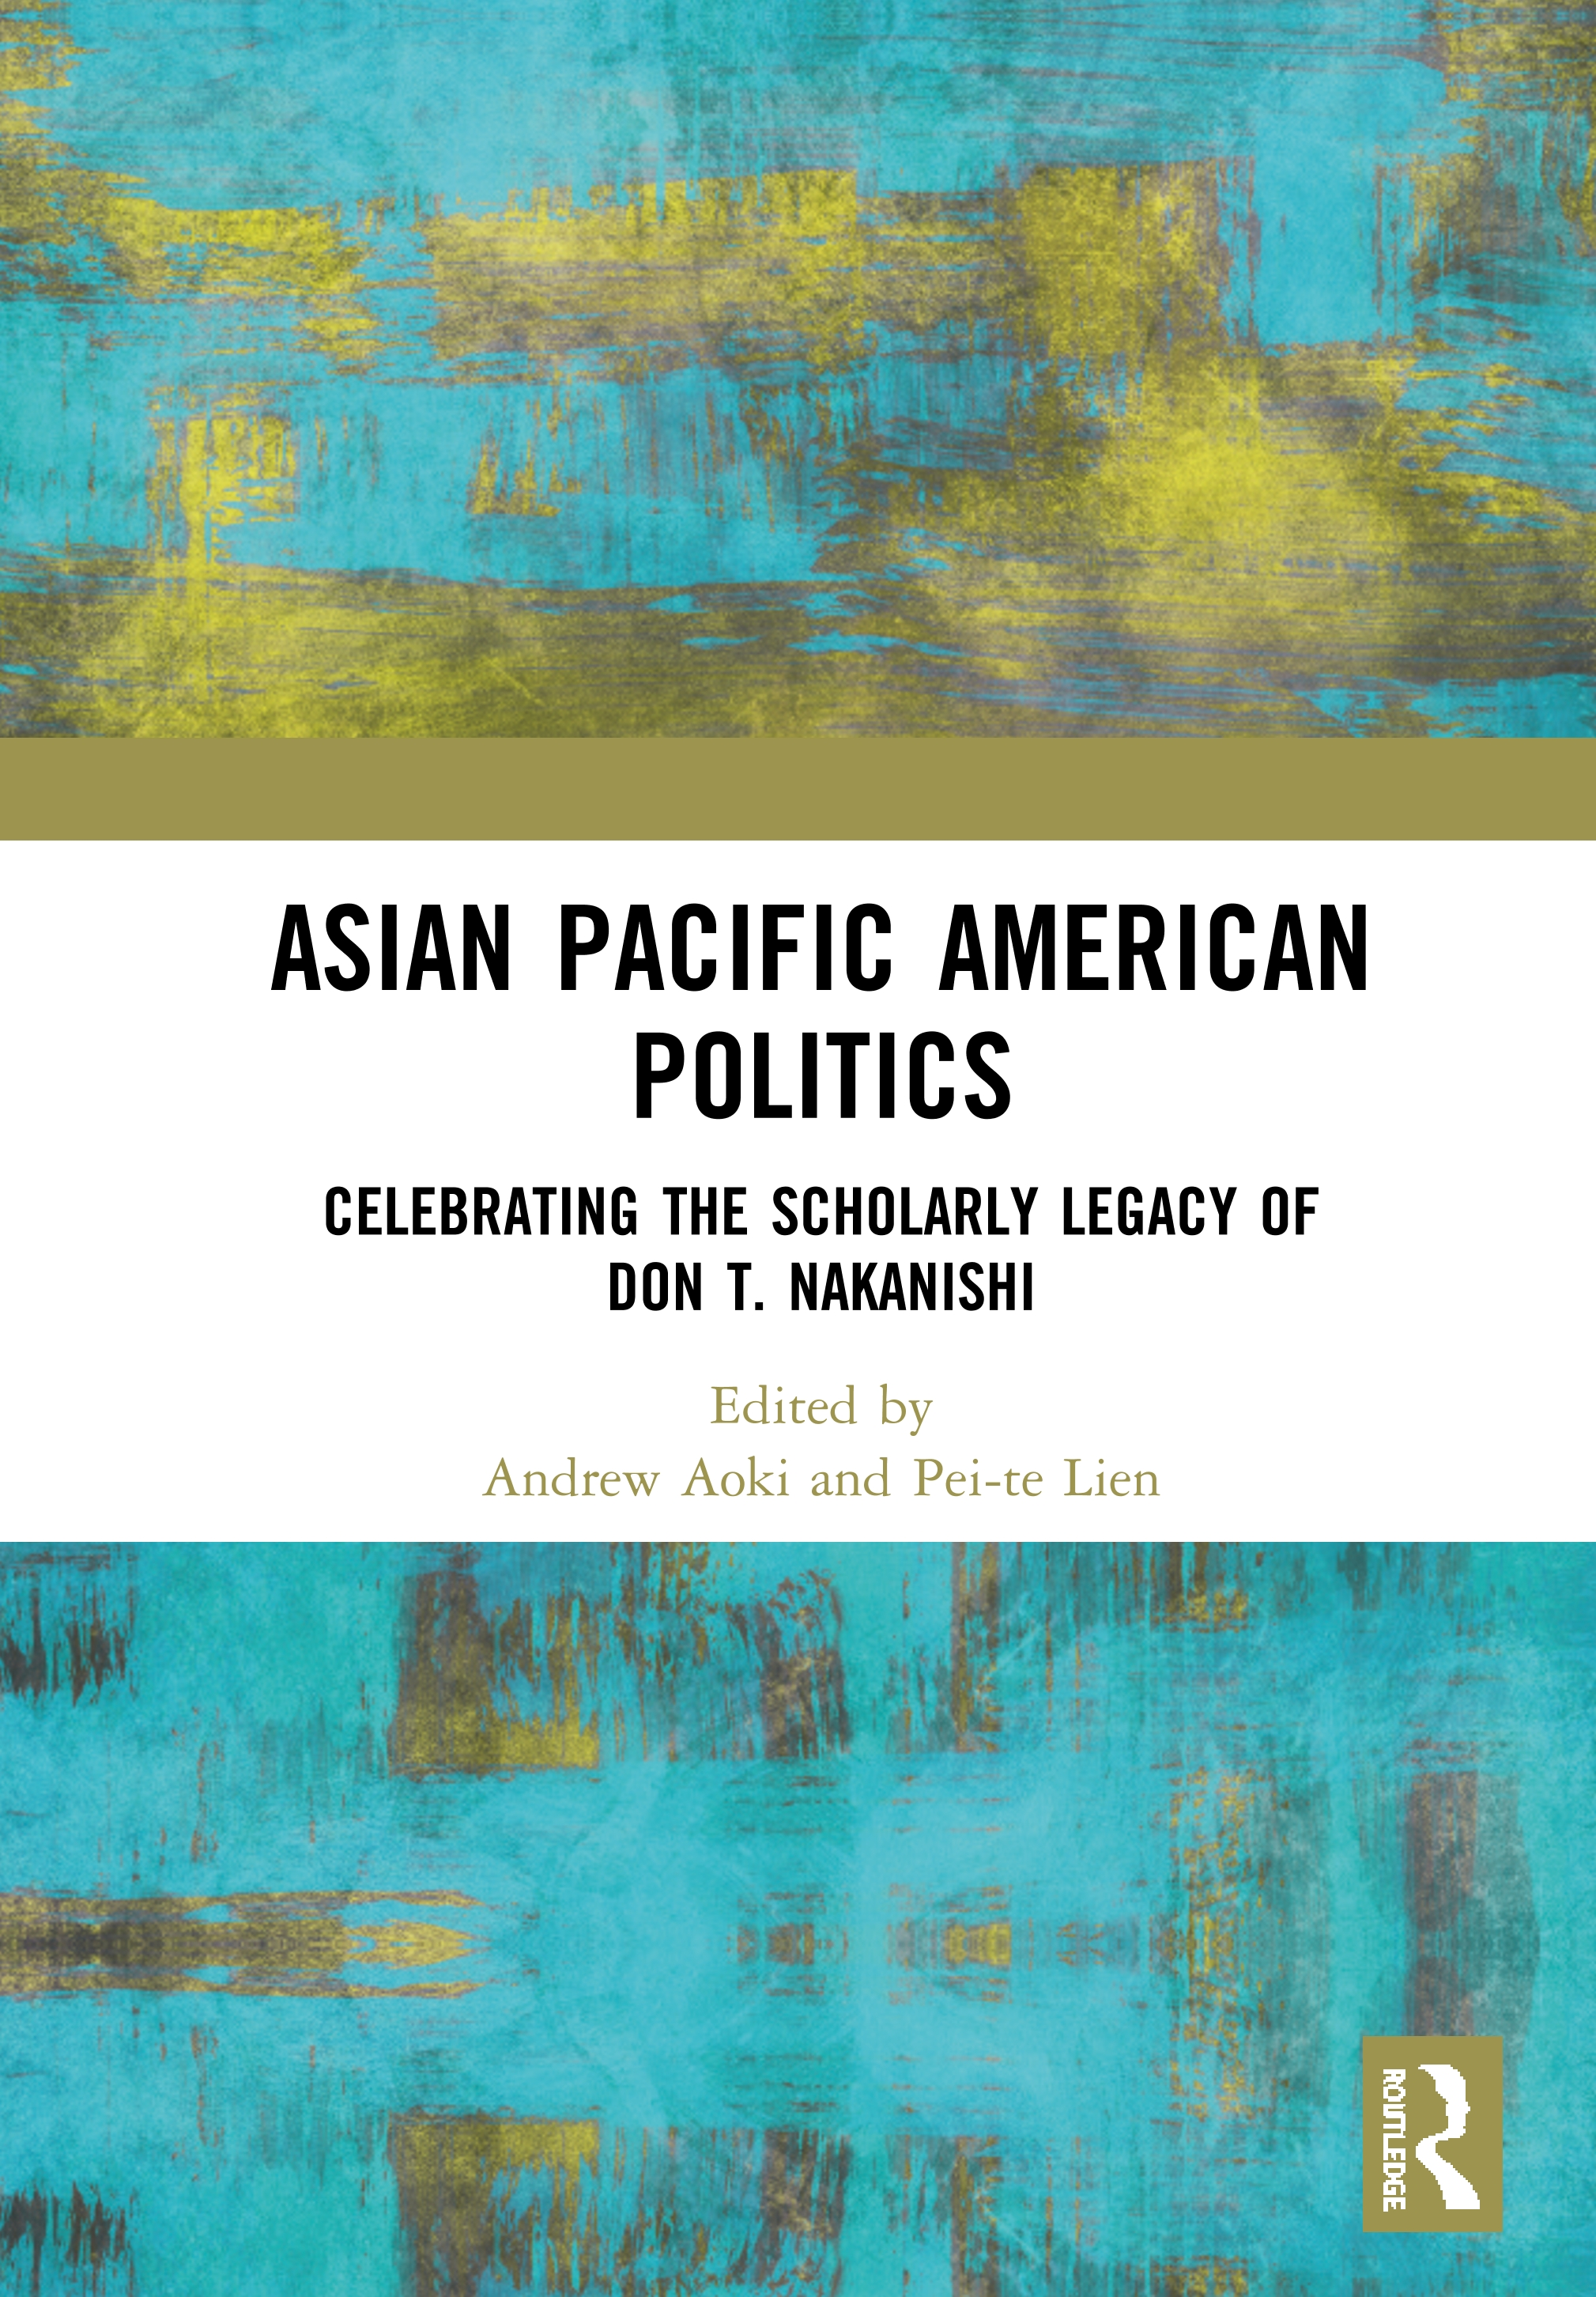 Asian Pacific American Politics: Celebrating the Scholarly Legacy of Don T. Nakanishi book cover